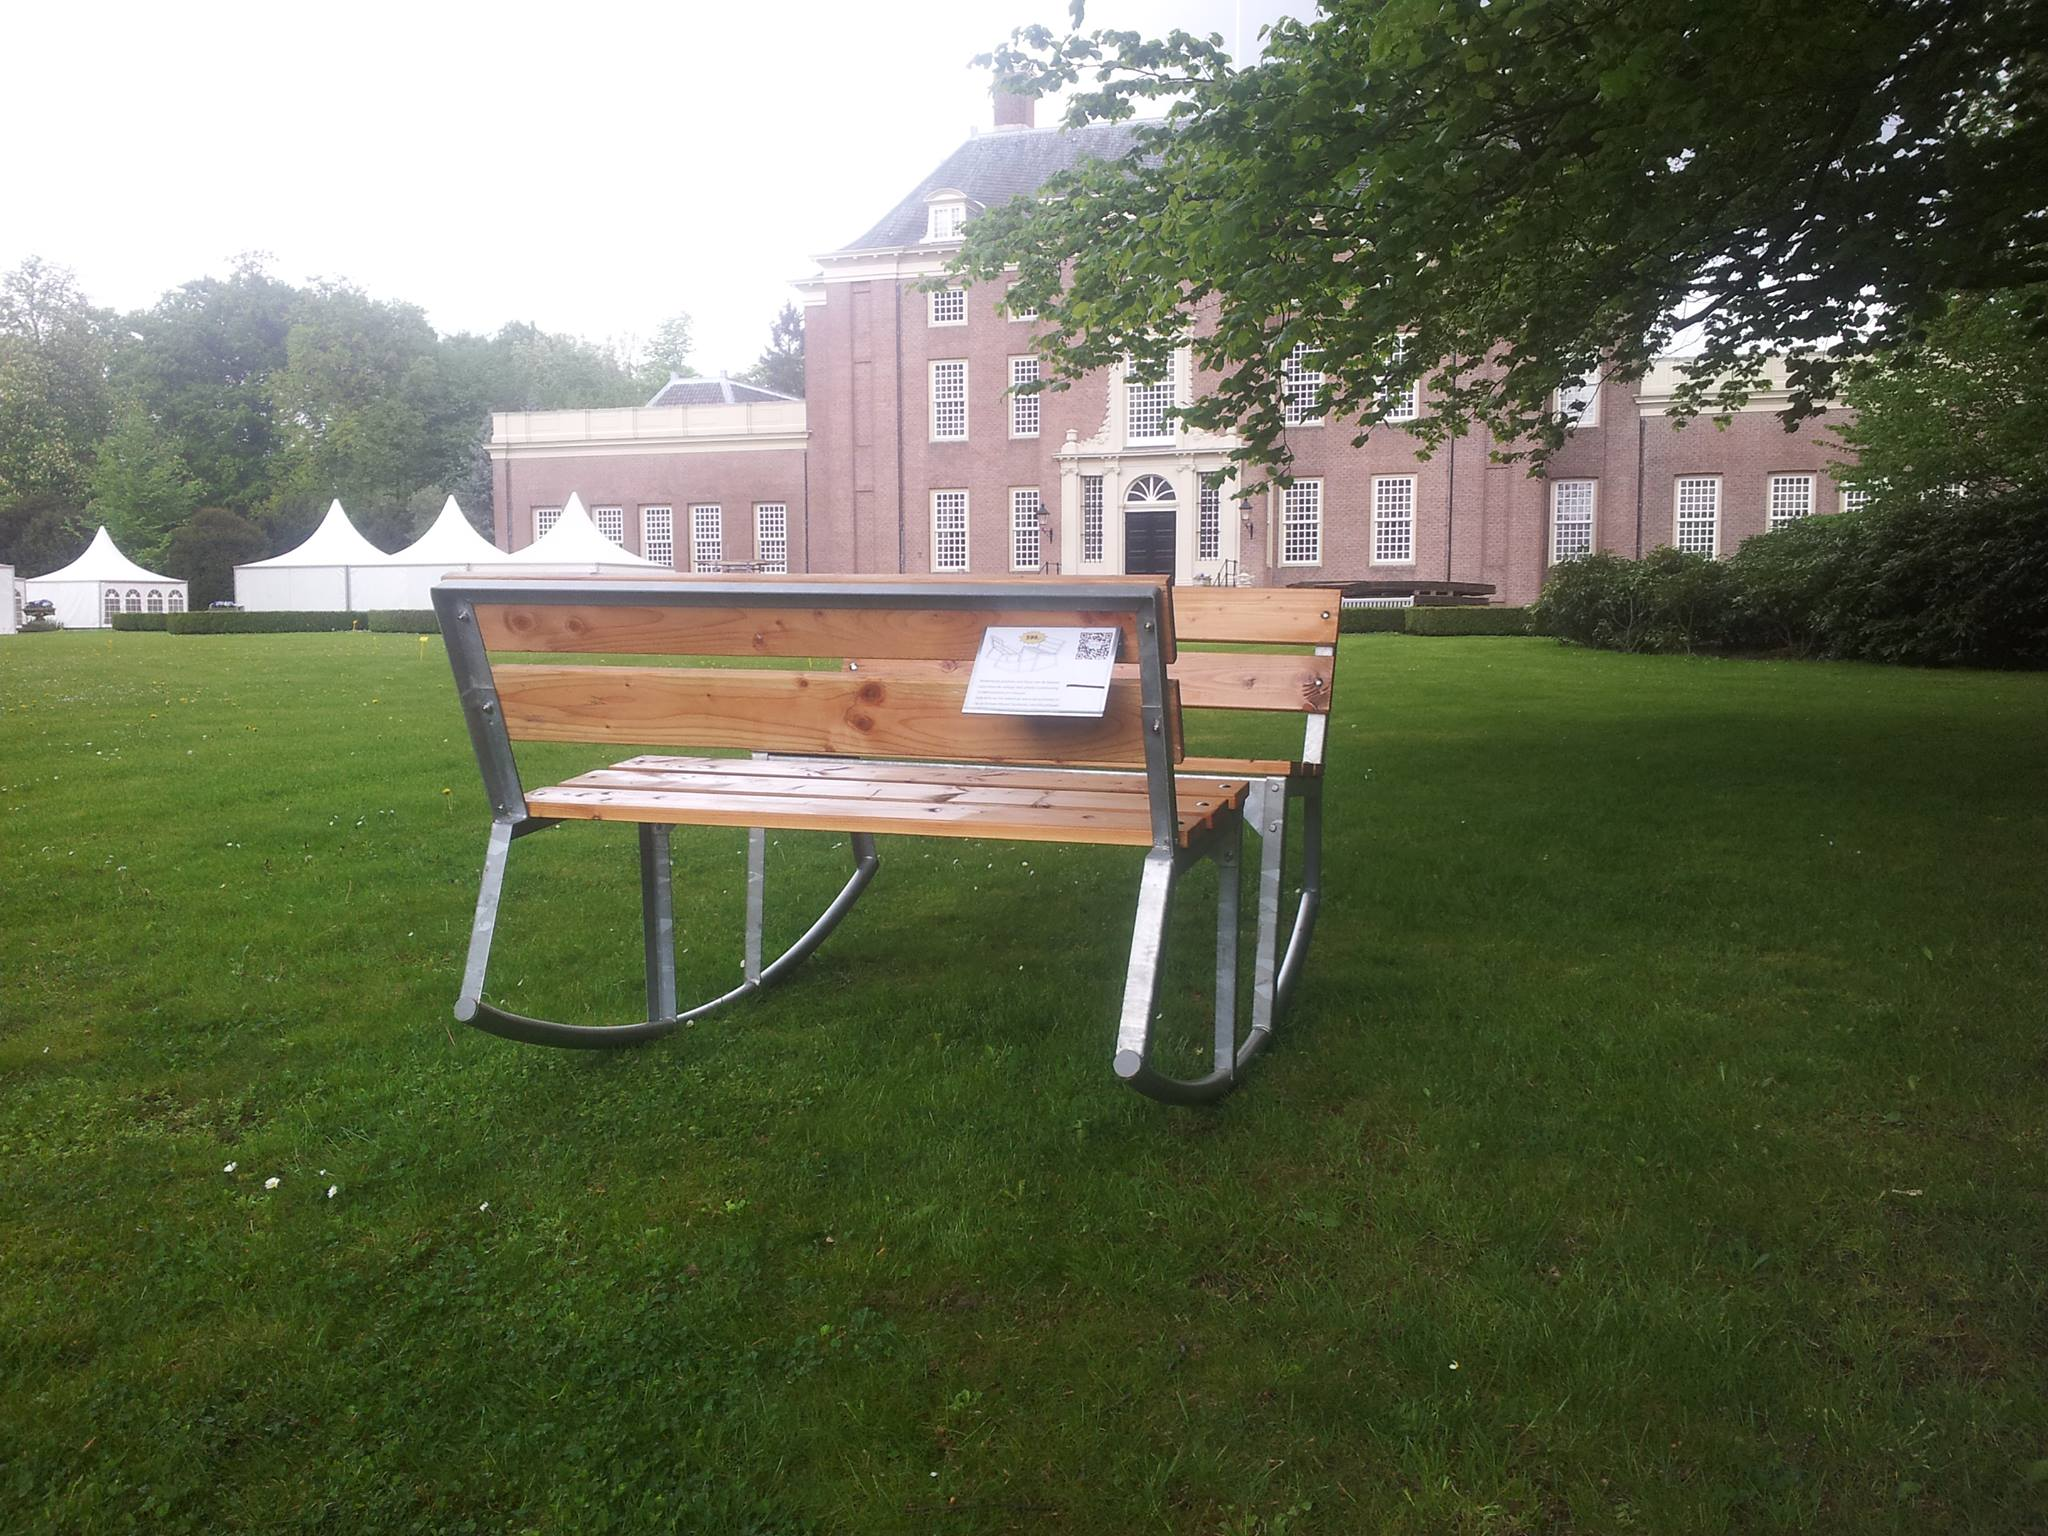 Bank Dream Bench van A Boys Dream bij slot Zeist